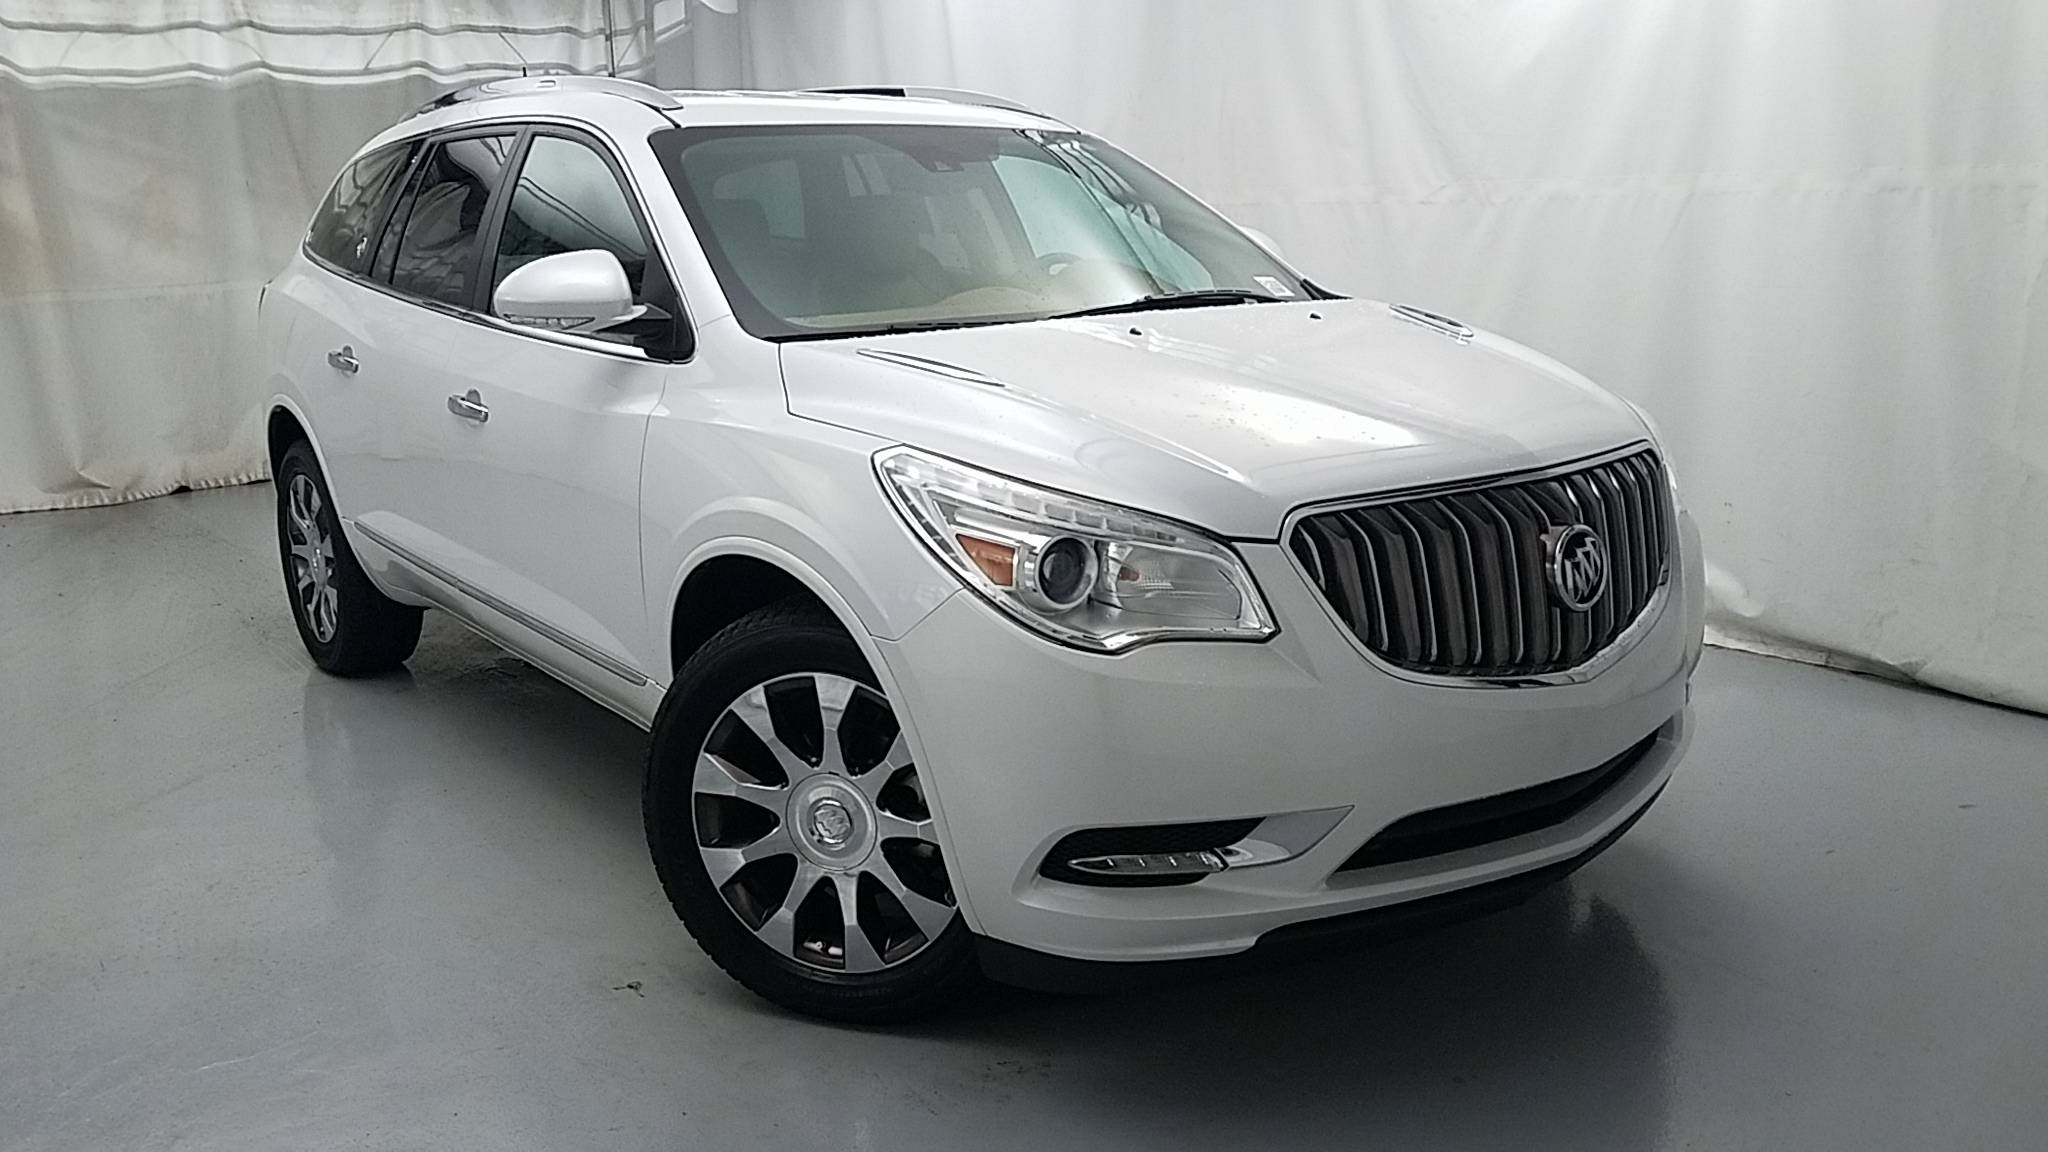 Used Buick Regal Vehicles for Sale near Hammond New Orleans